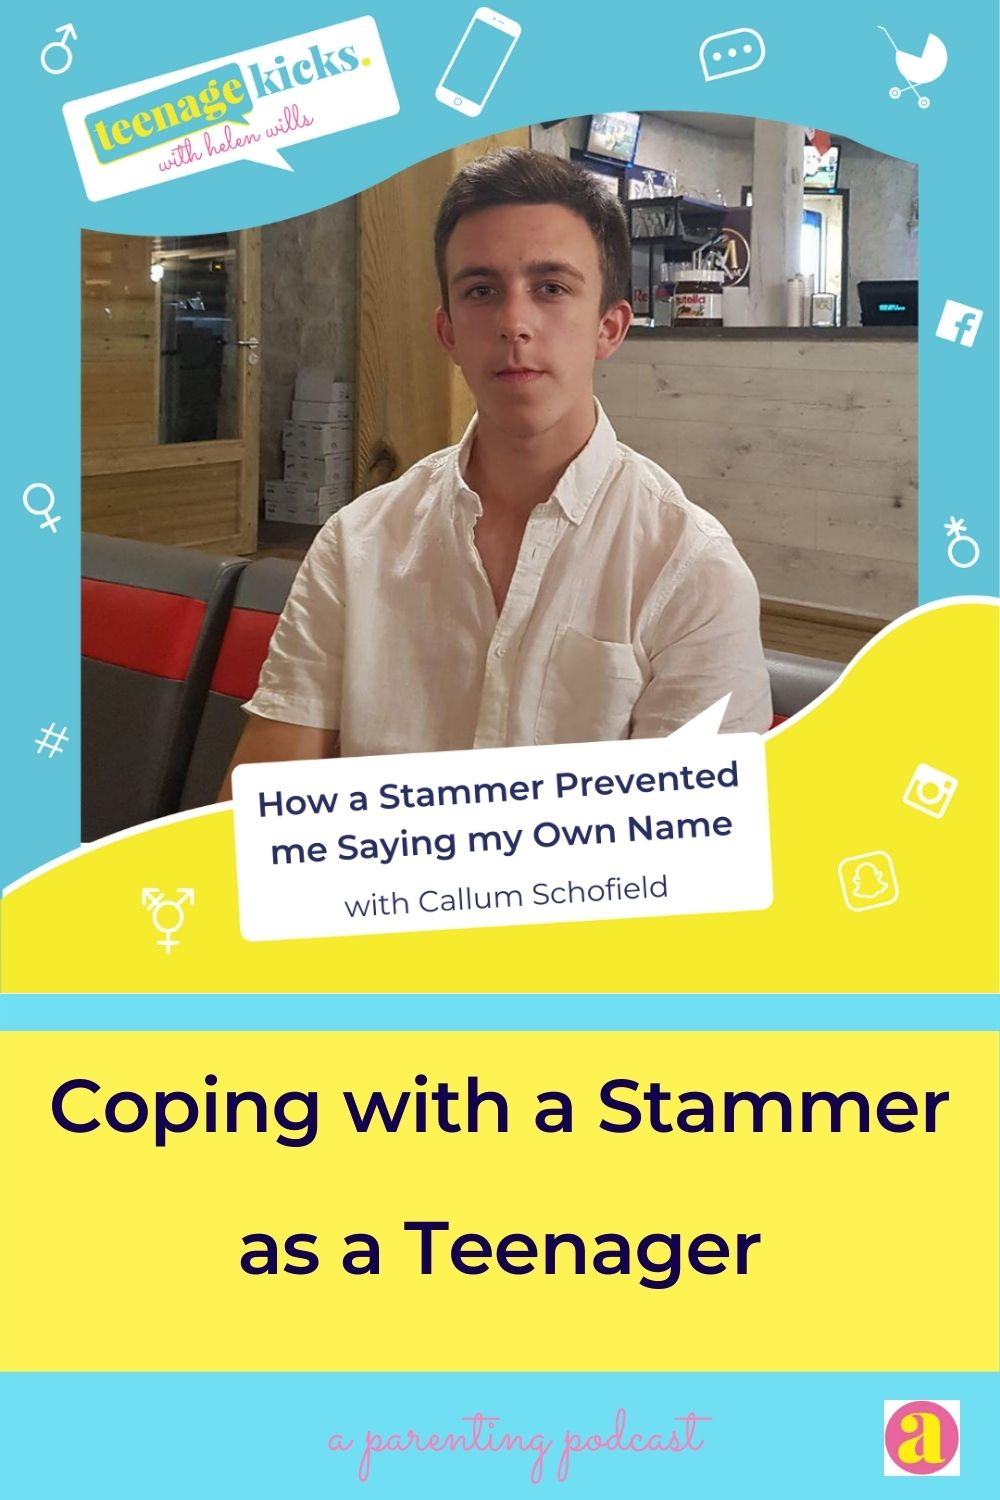 Callum describes how teenage stammering affected his mental health in this episode of the Teenage Kicks podcast